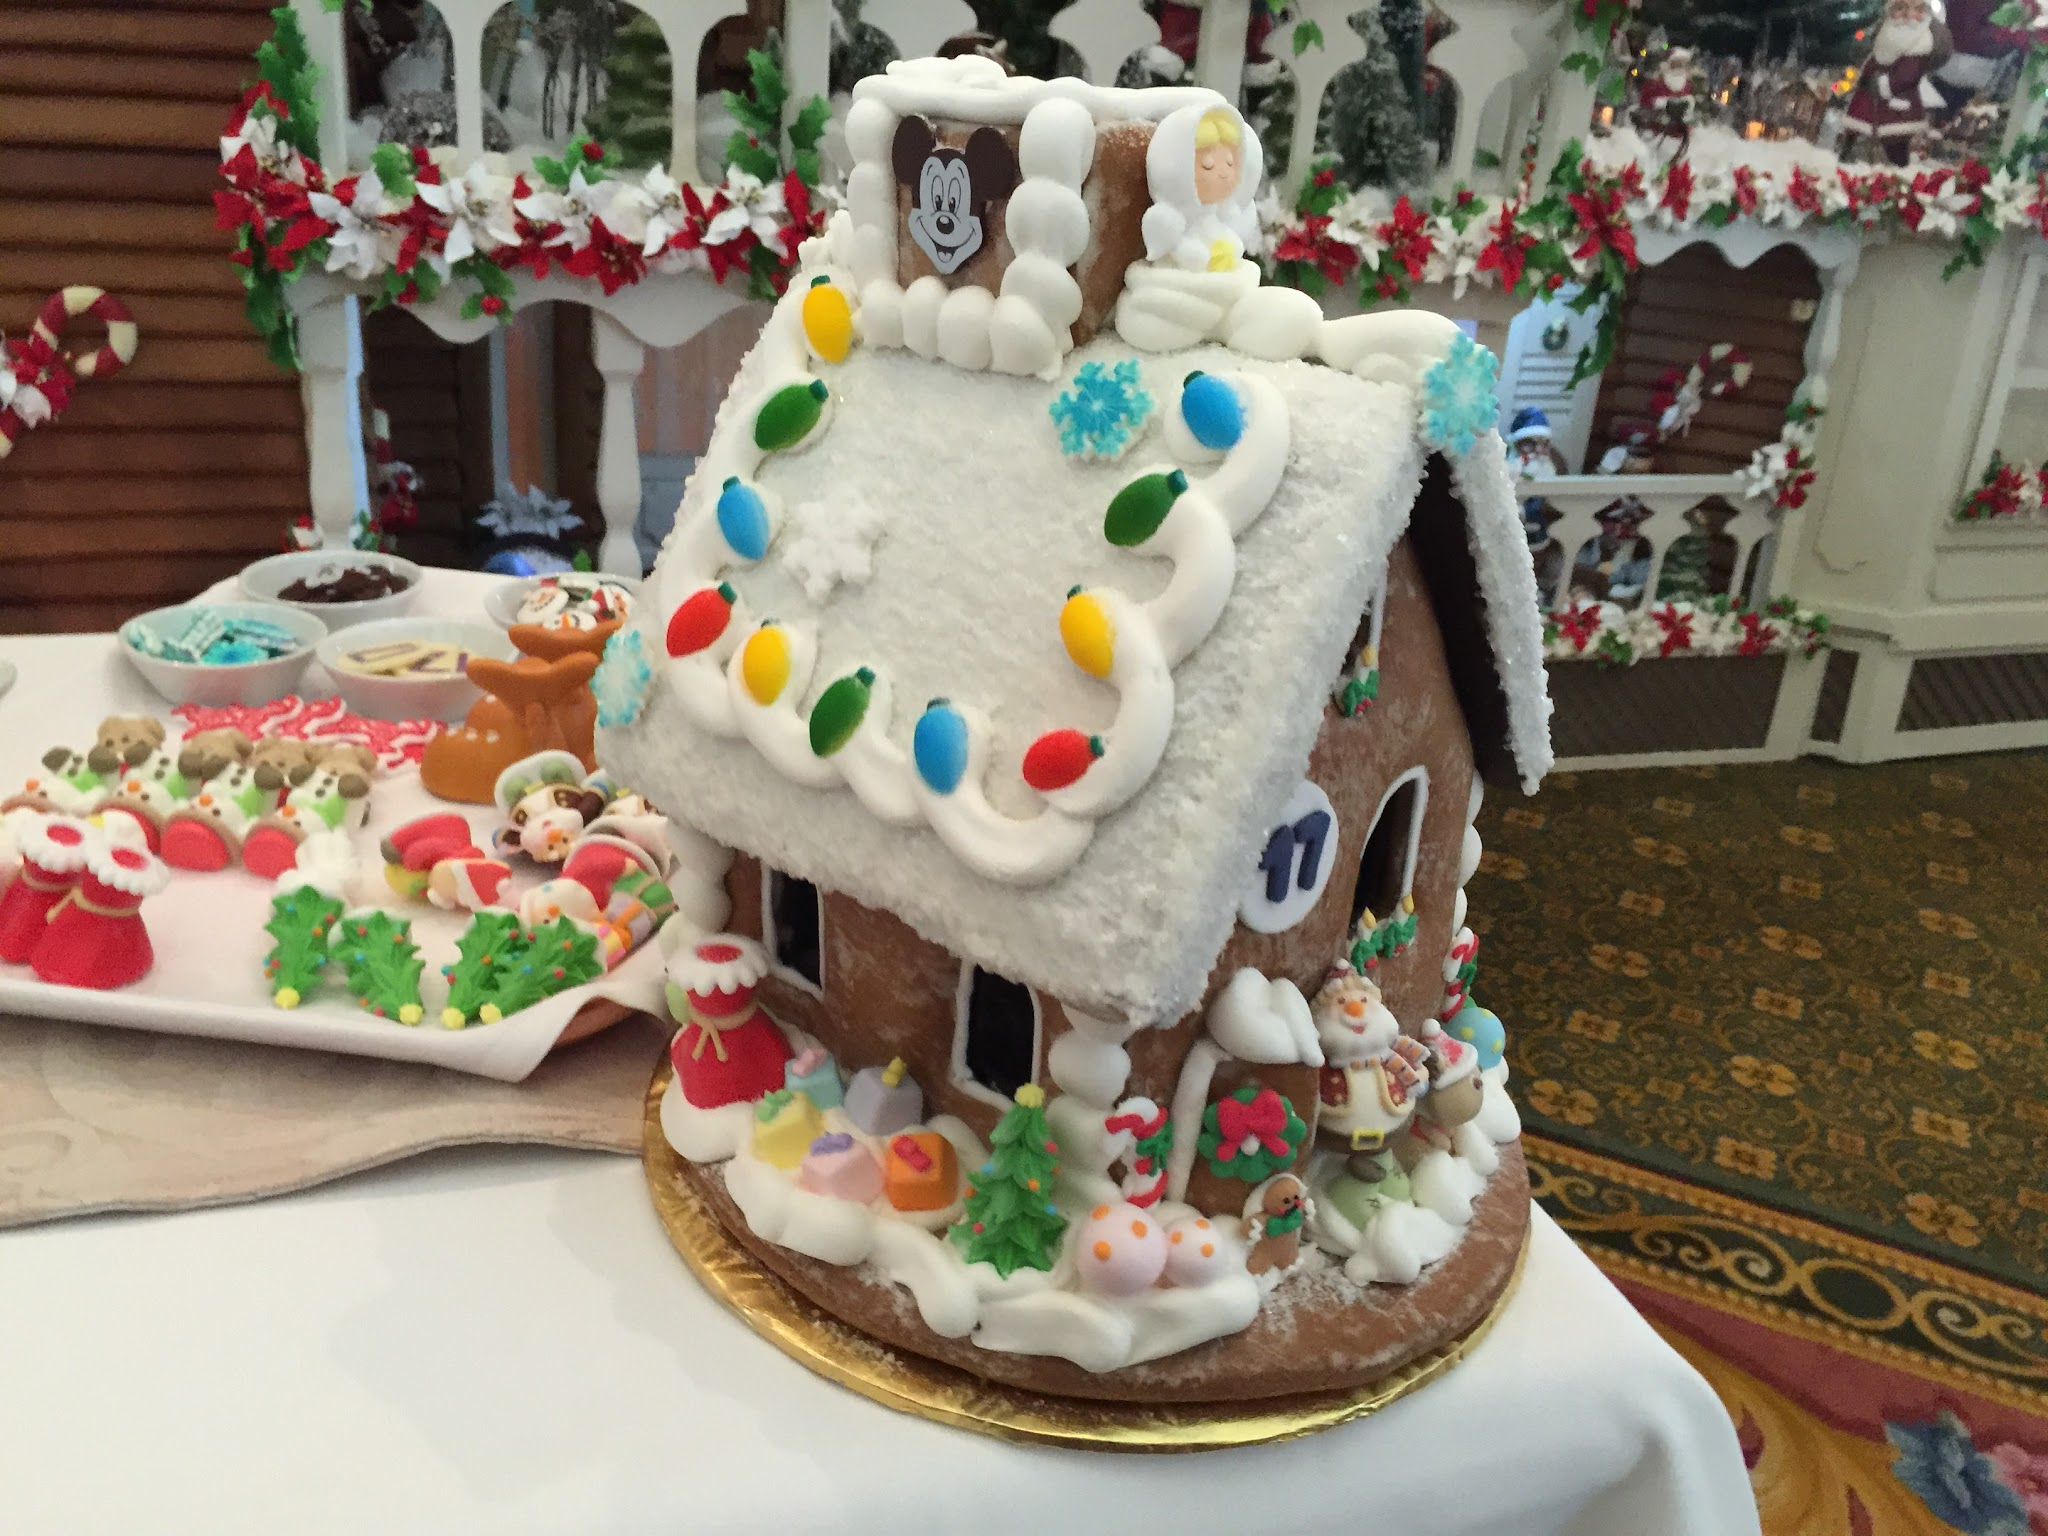 Elegant Attendees are presented with recipes and blueprints so you can try your hand at making your own gingerbread house albeit a much smaller one at home